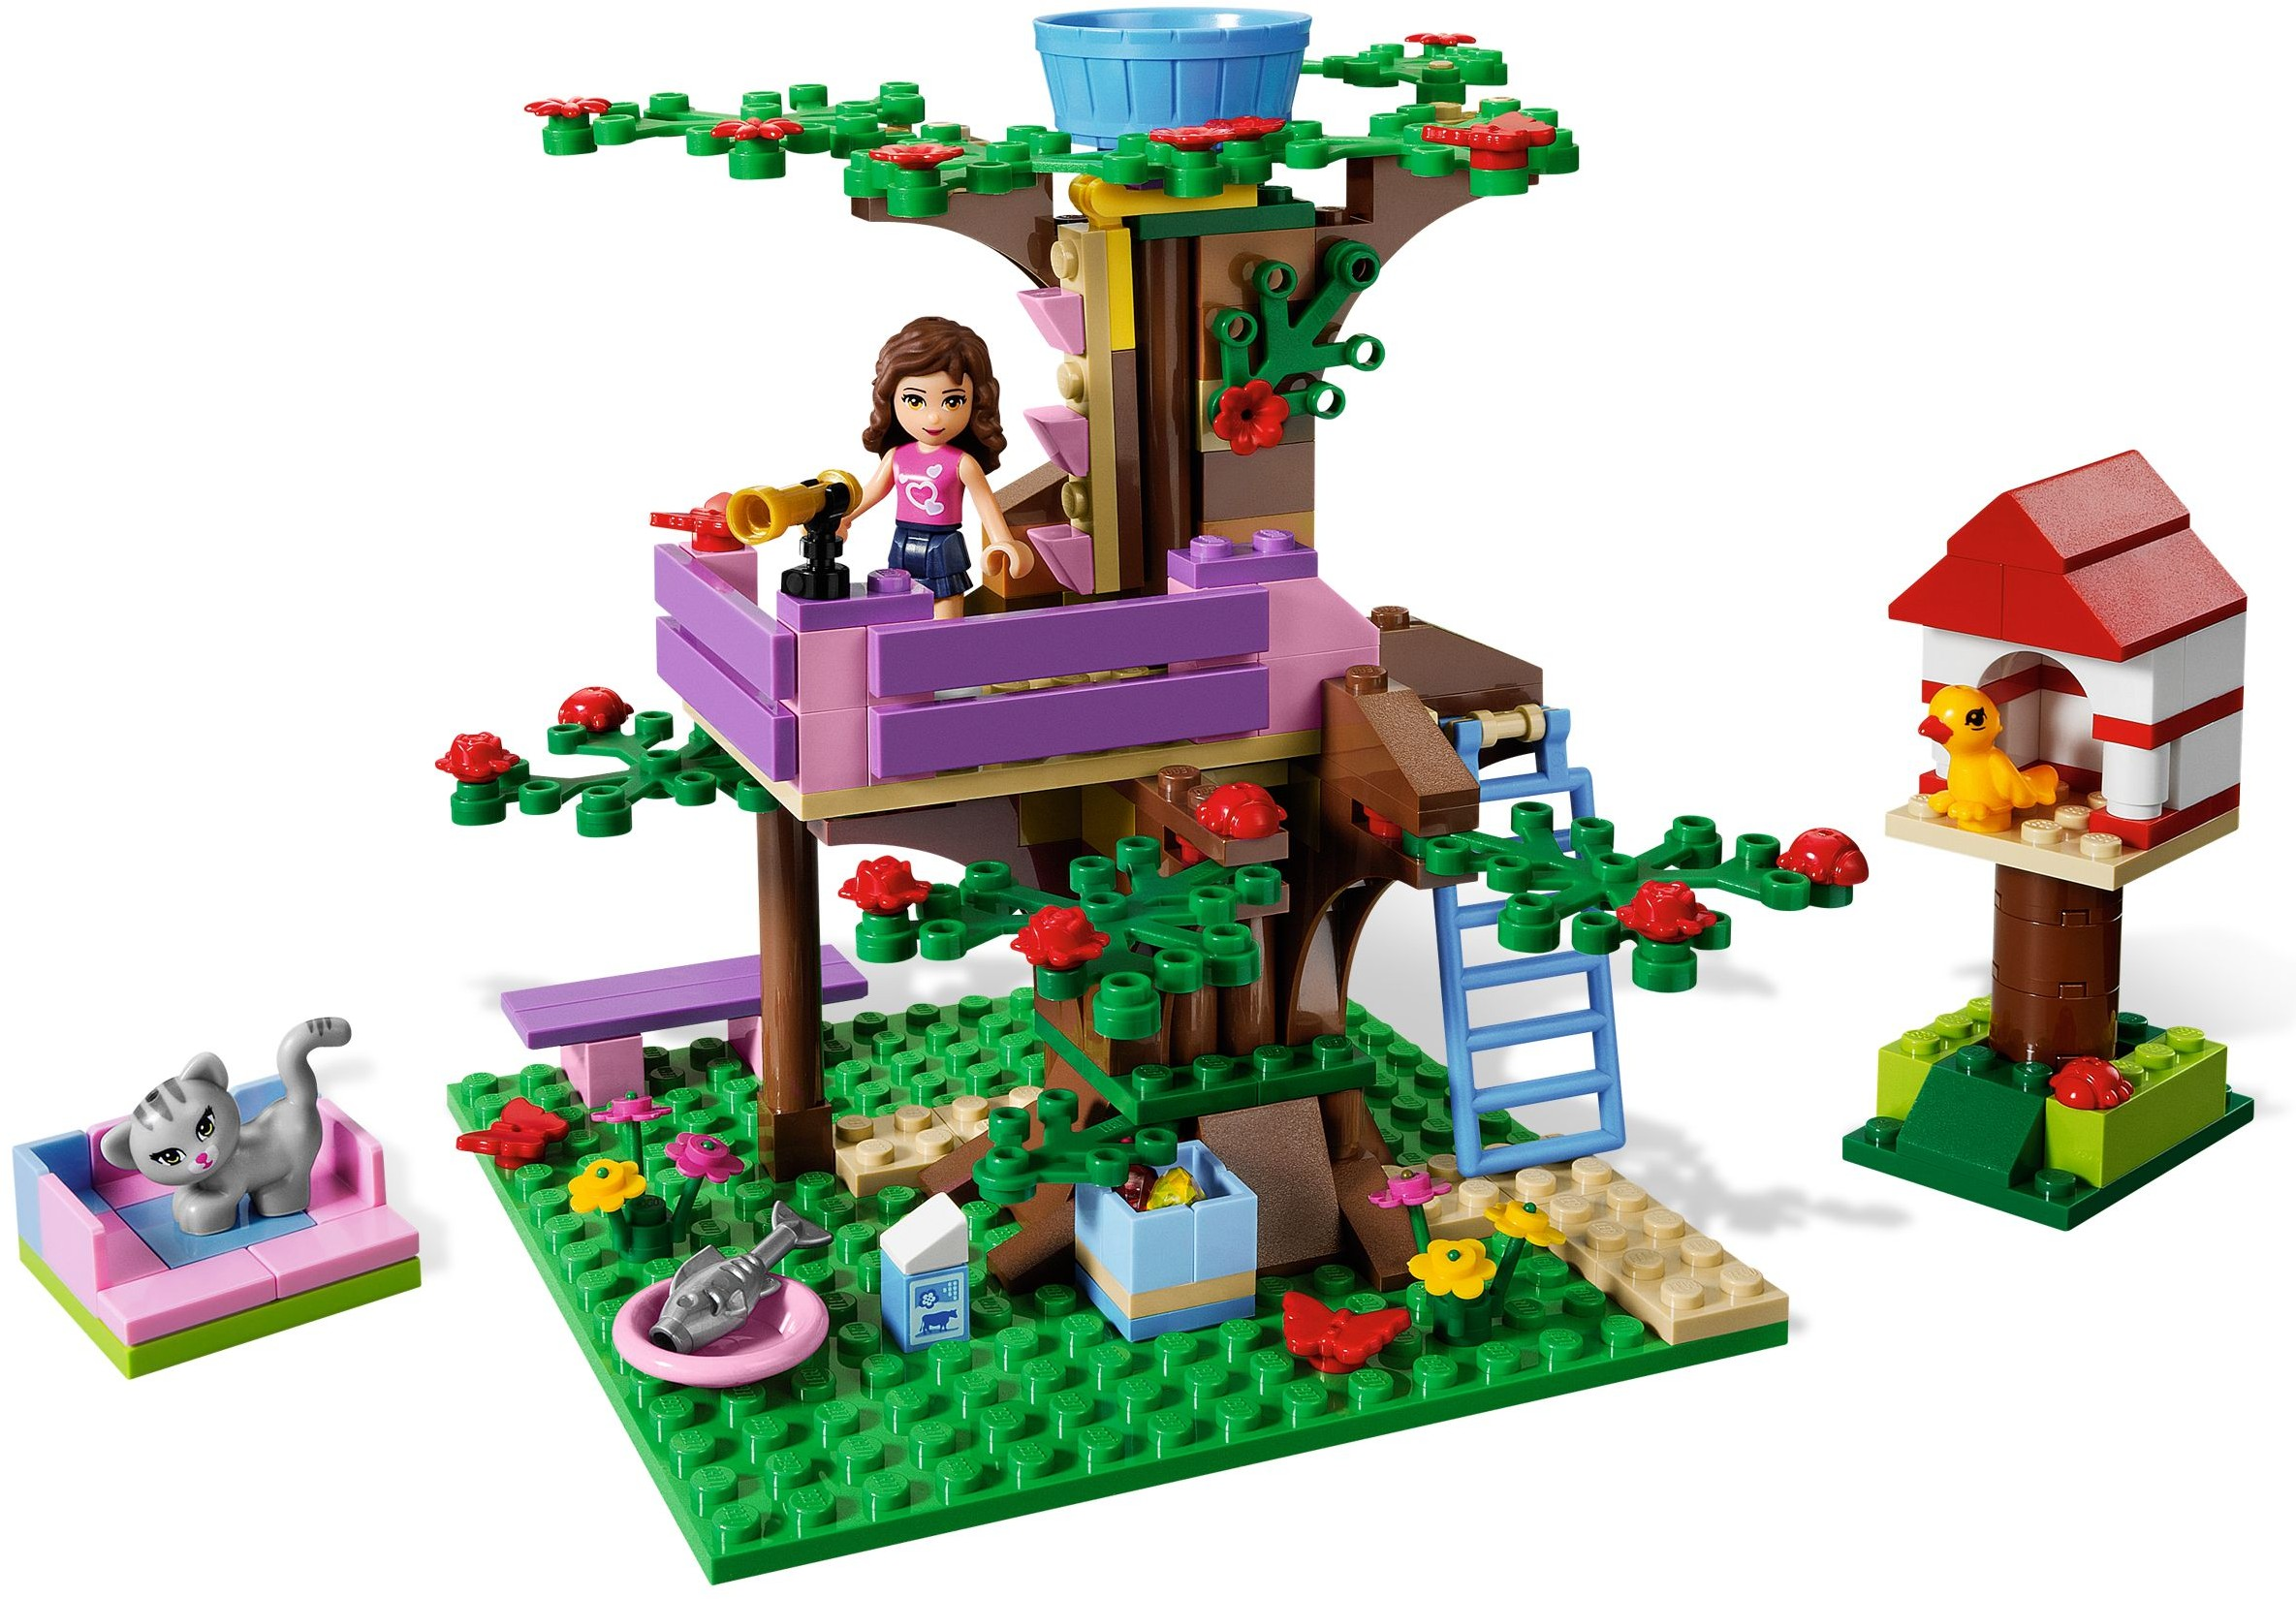 Friends Bricks | First Friends sets released January 2012